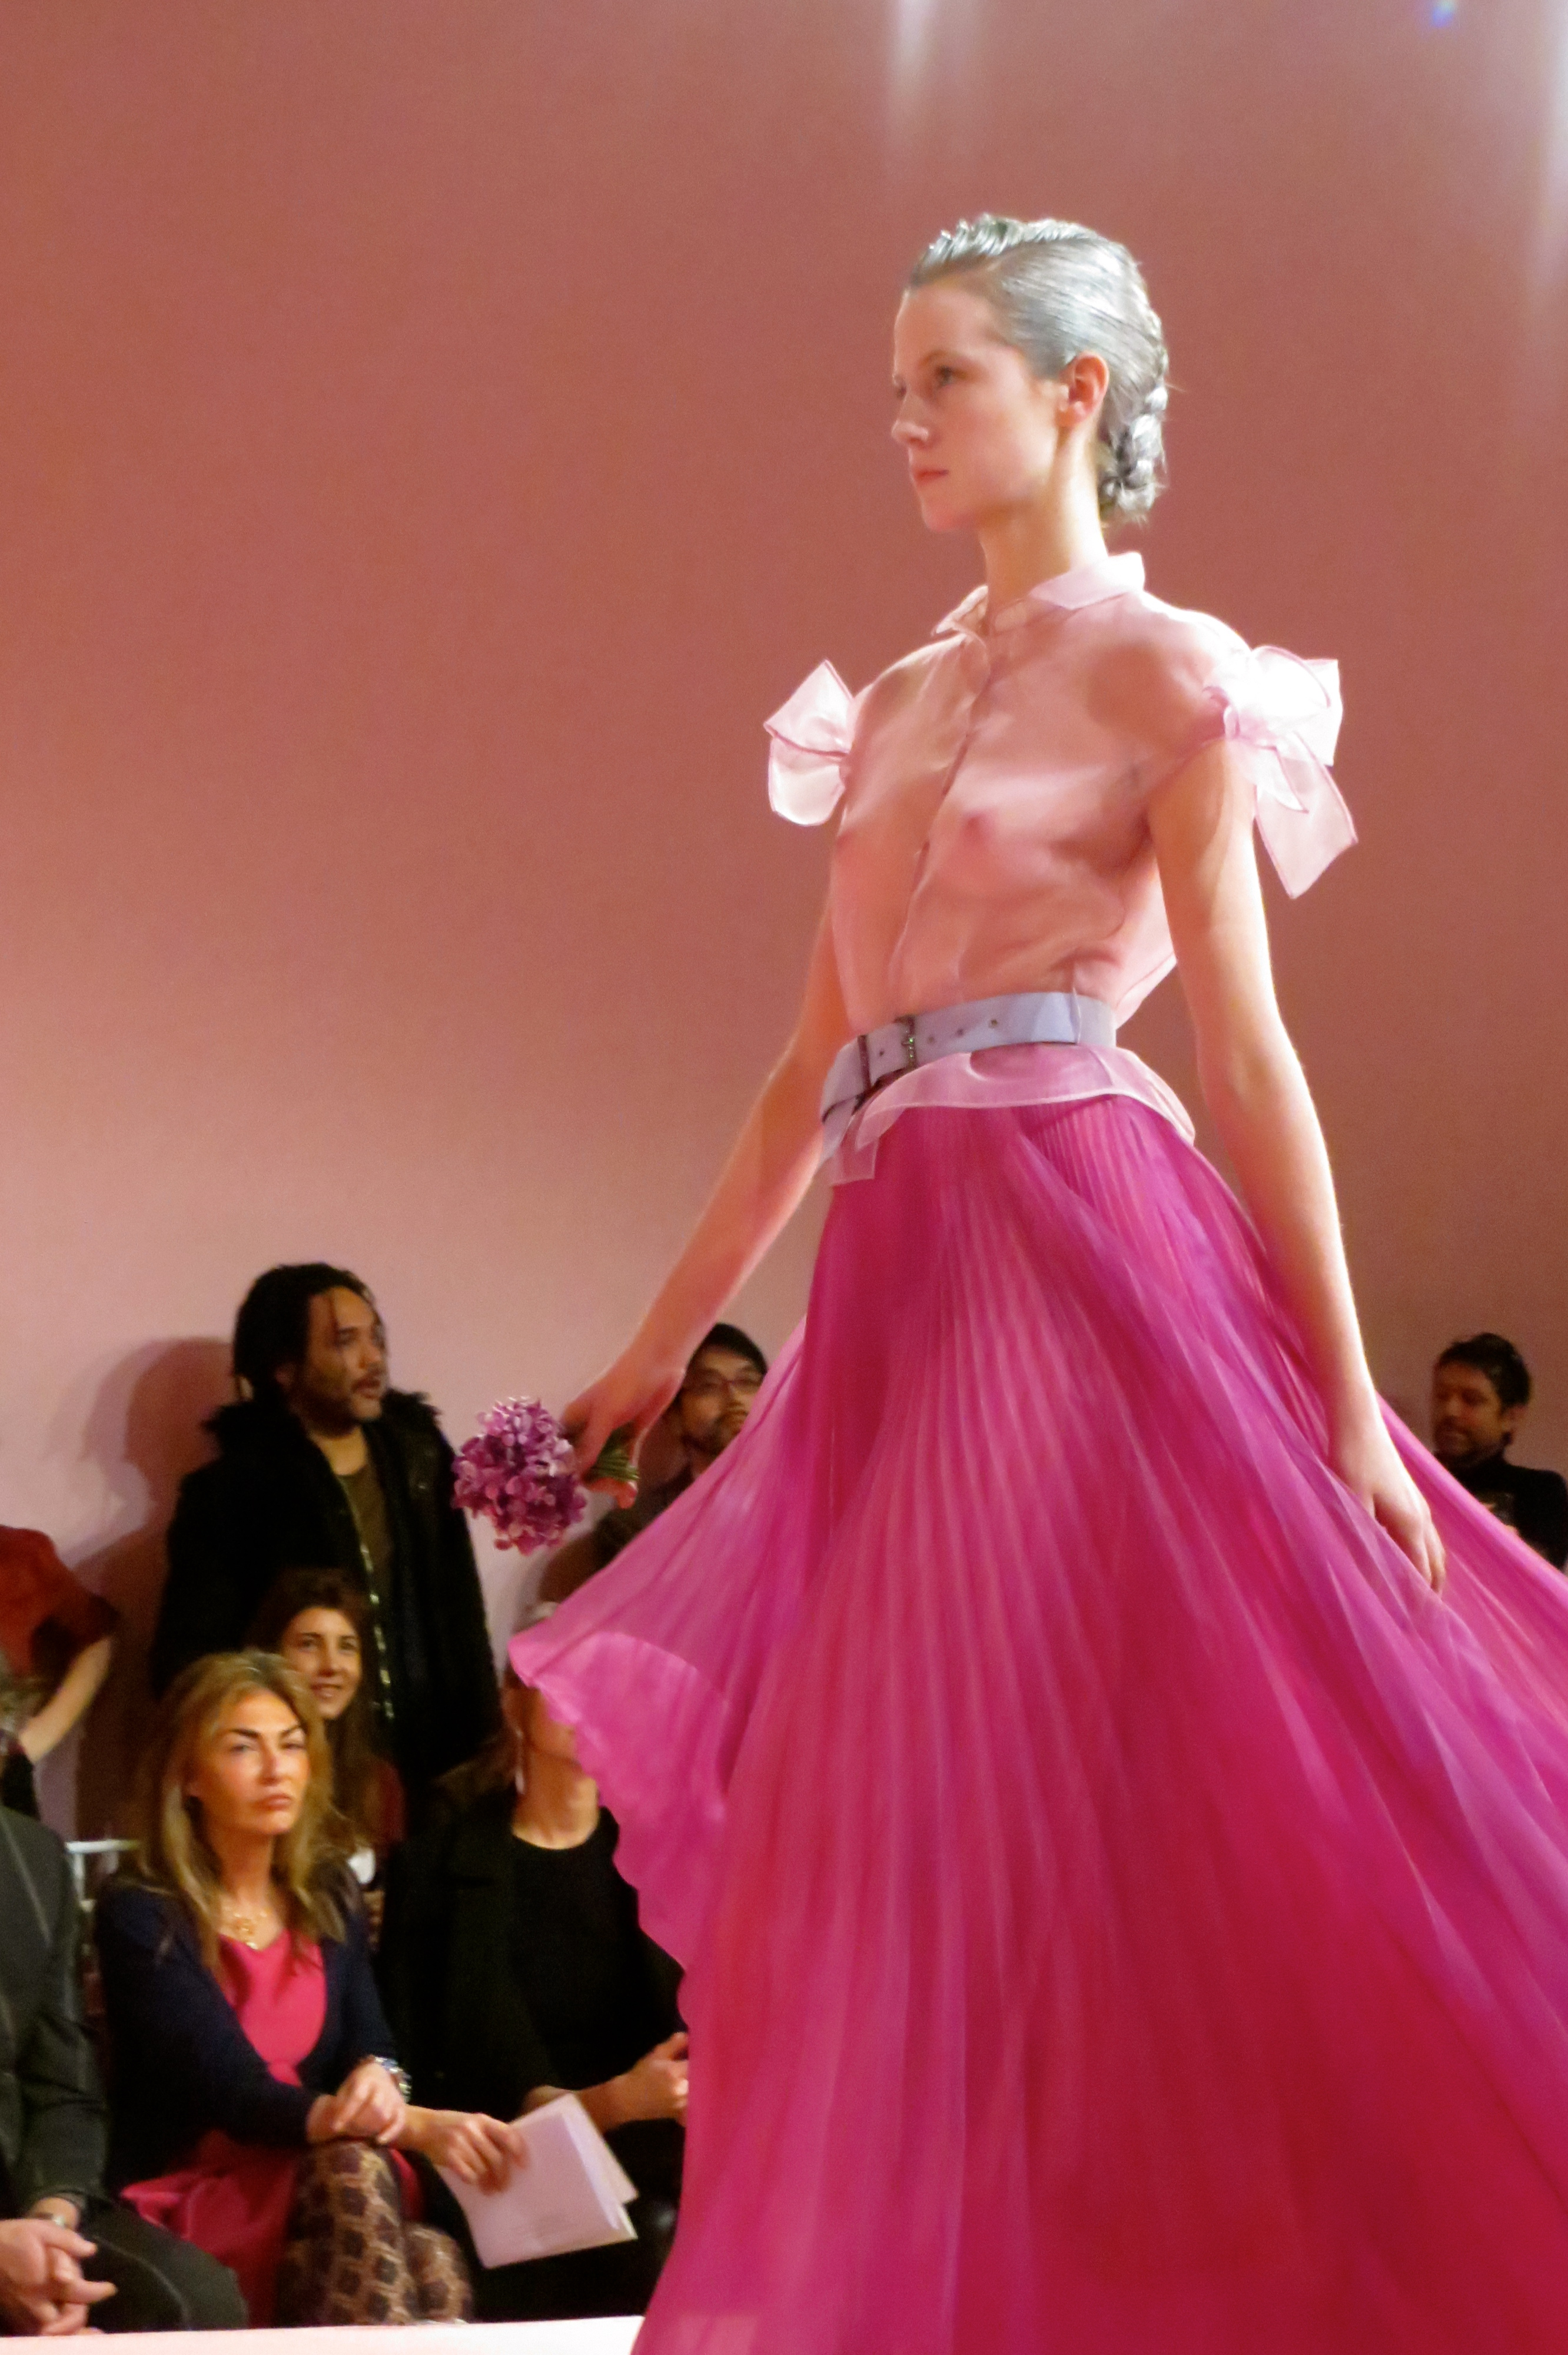 Alexis mabille haute couture show 2013 agent luxe blog for Haute couture show